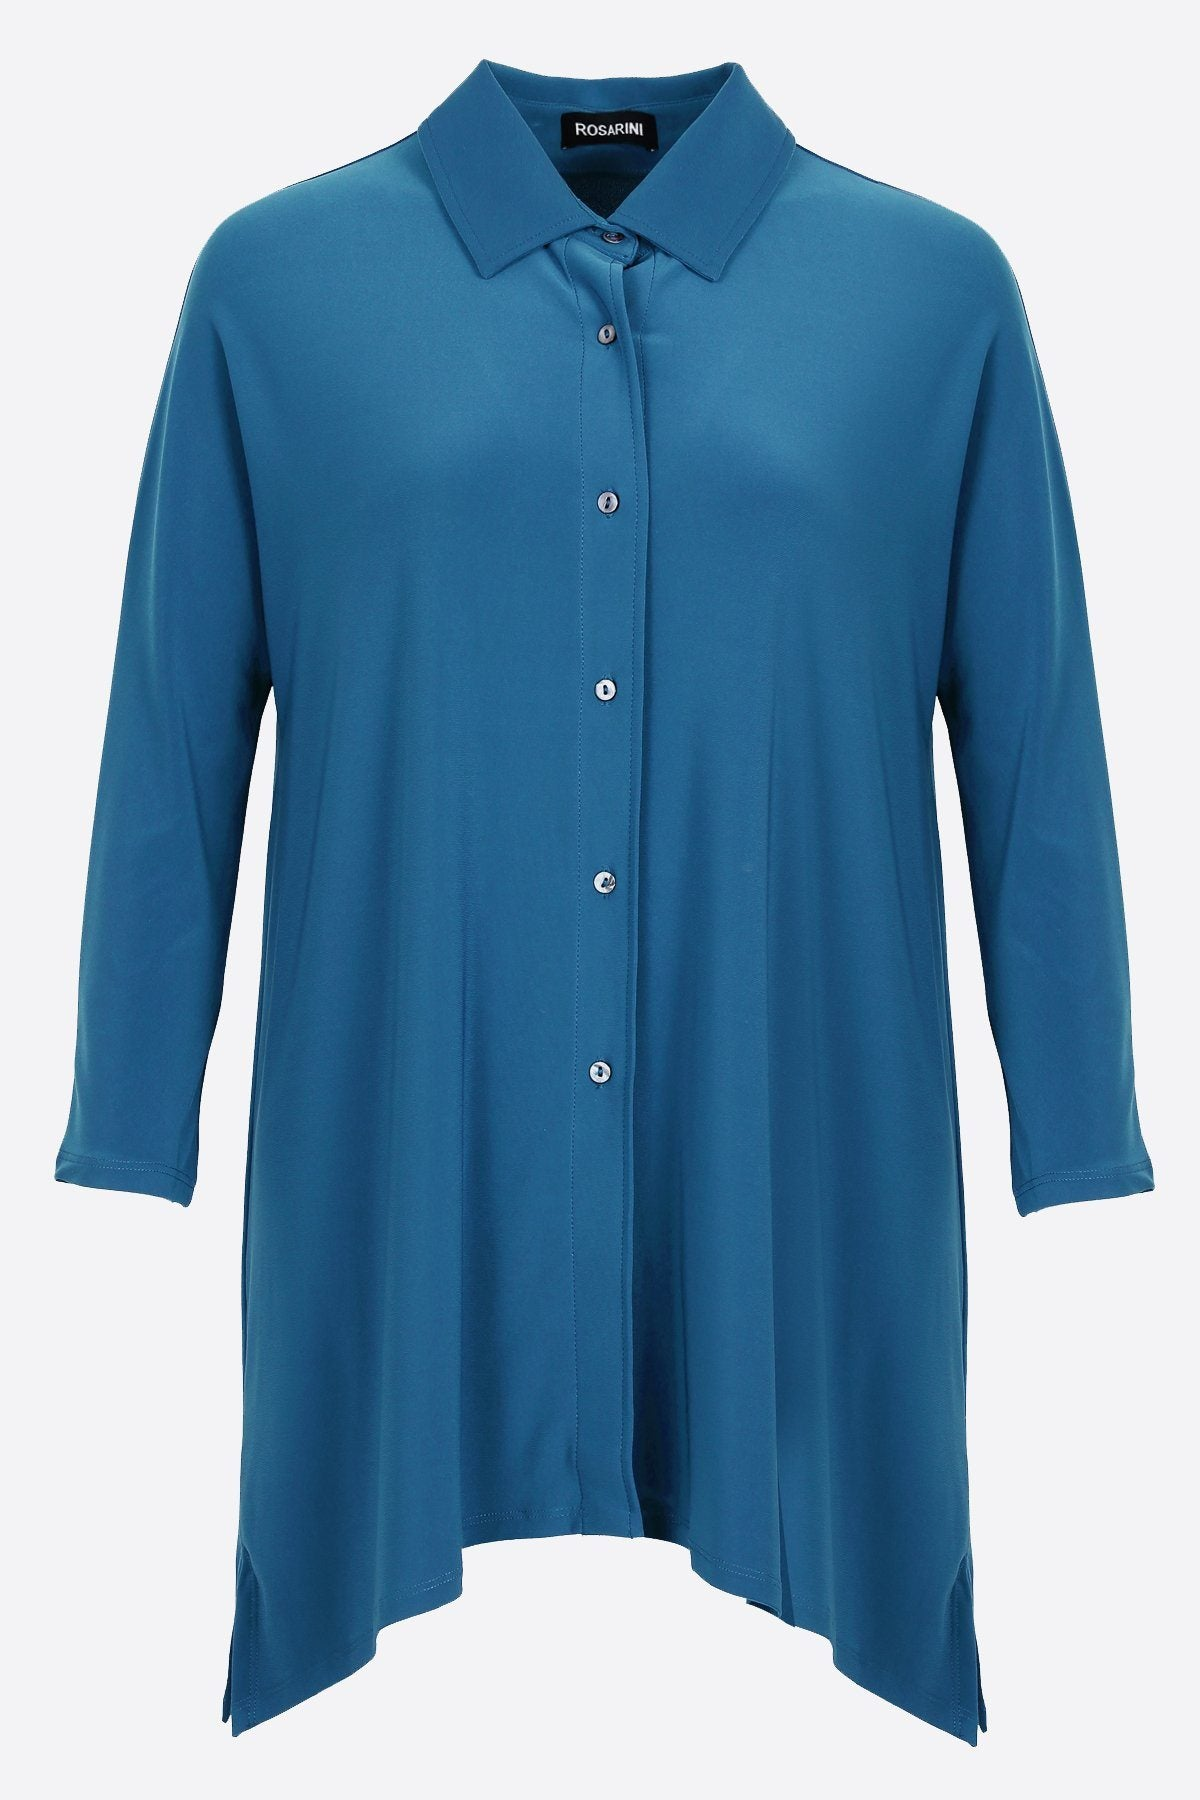 Button Shirt with Curved Hem Teal